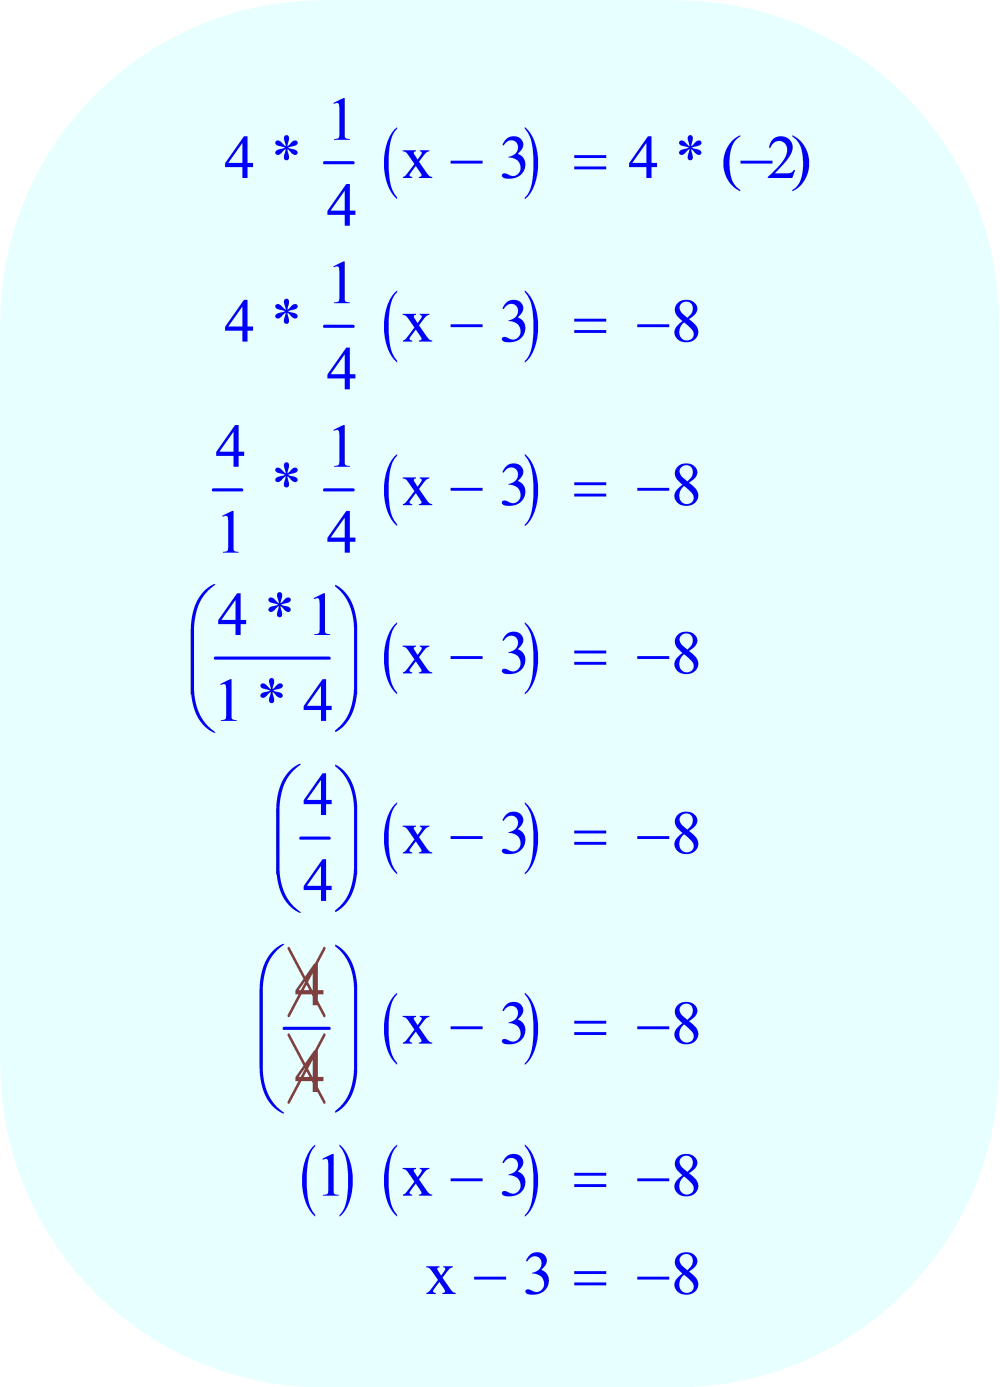 Multiply each side of the equation by 4